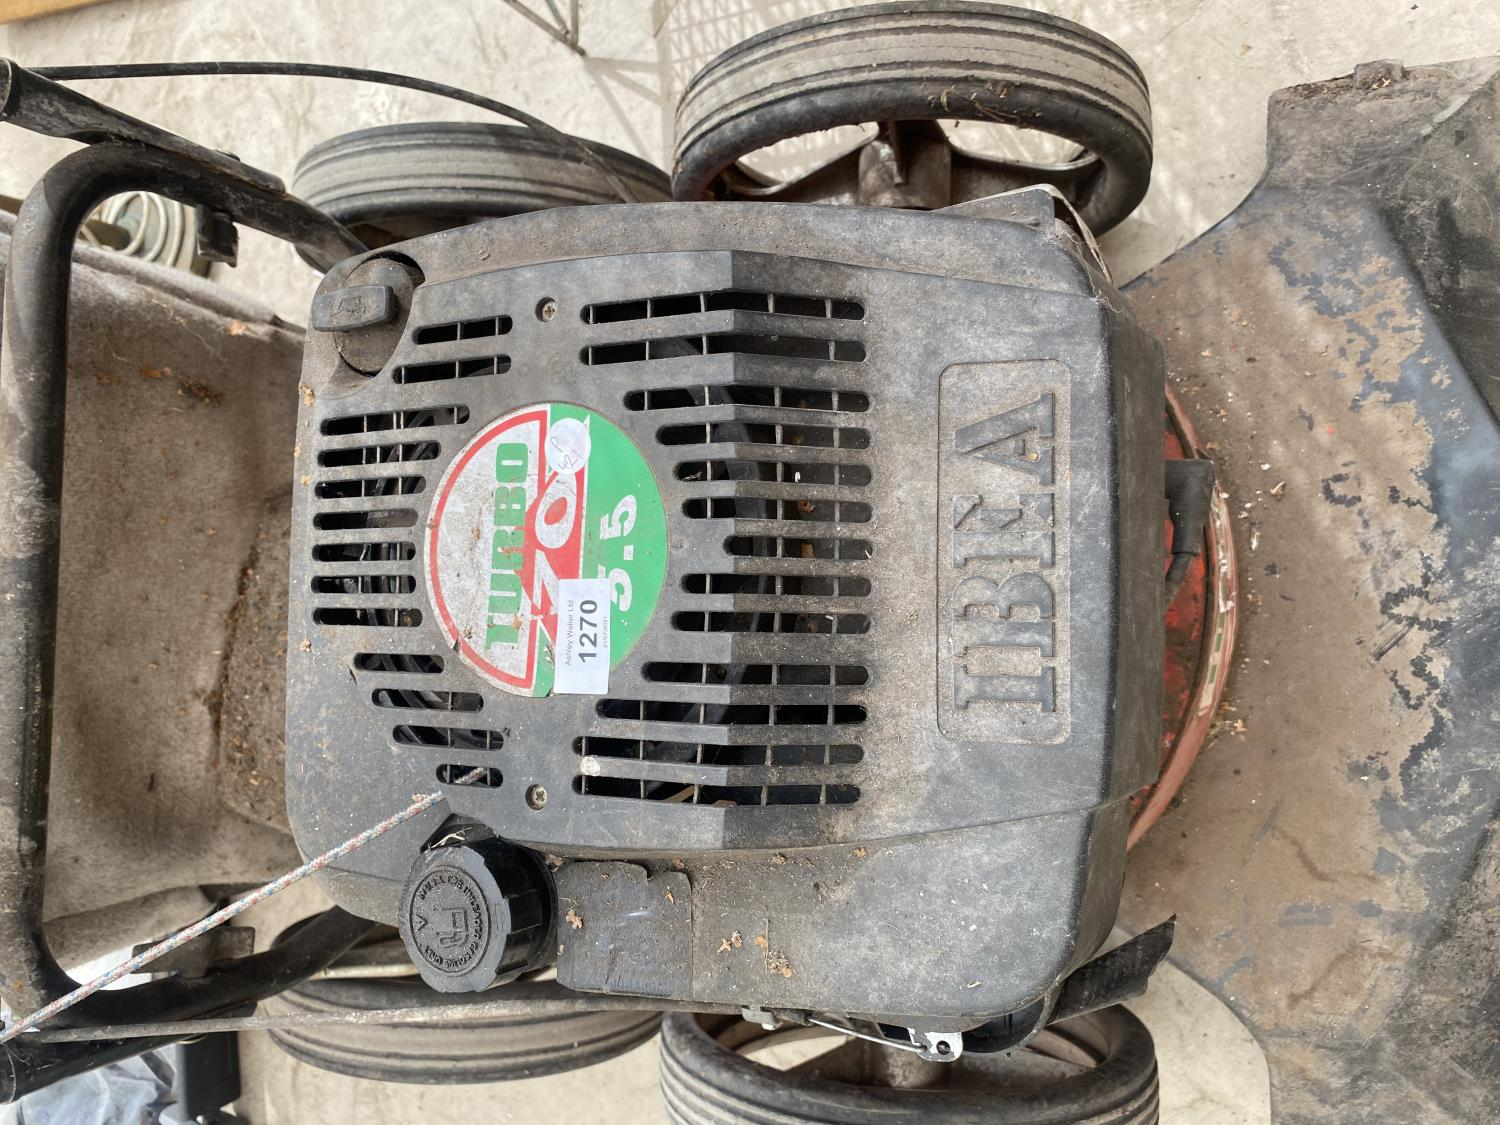 AN IBEA GARDEN HOOVER WITH TURBO 70 PETROL ENIGINE - Image 4 of 5